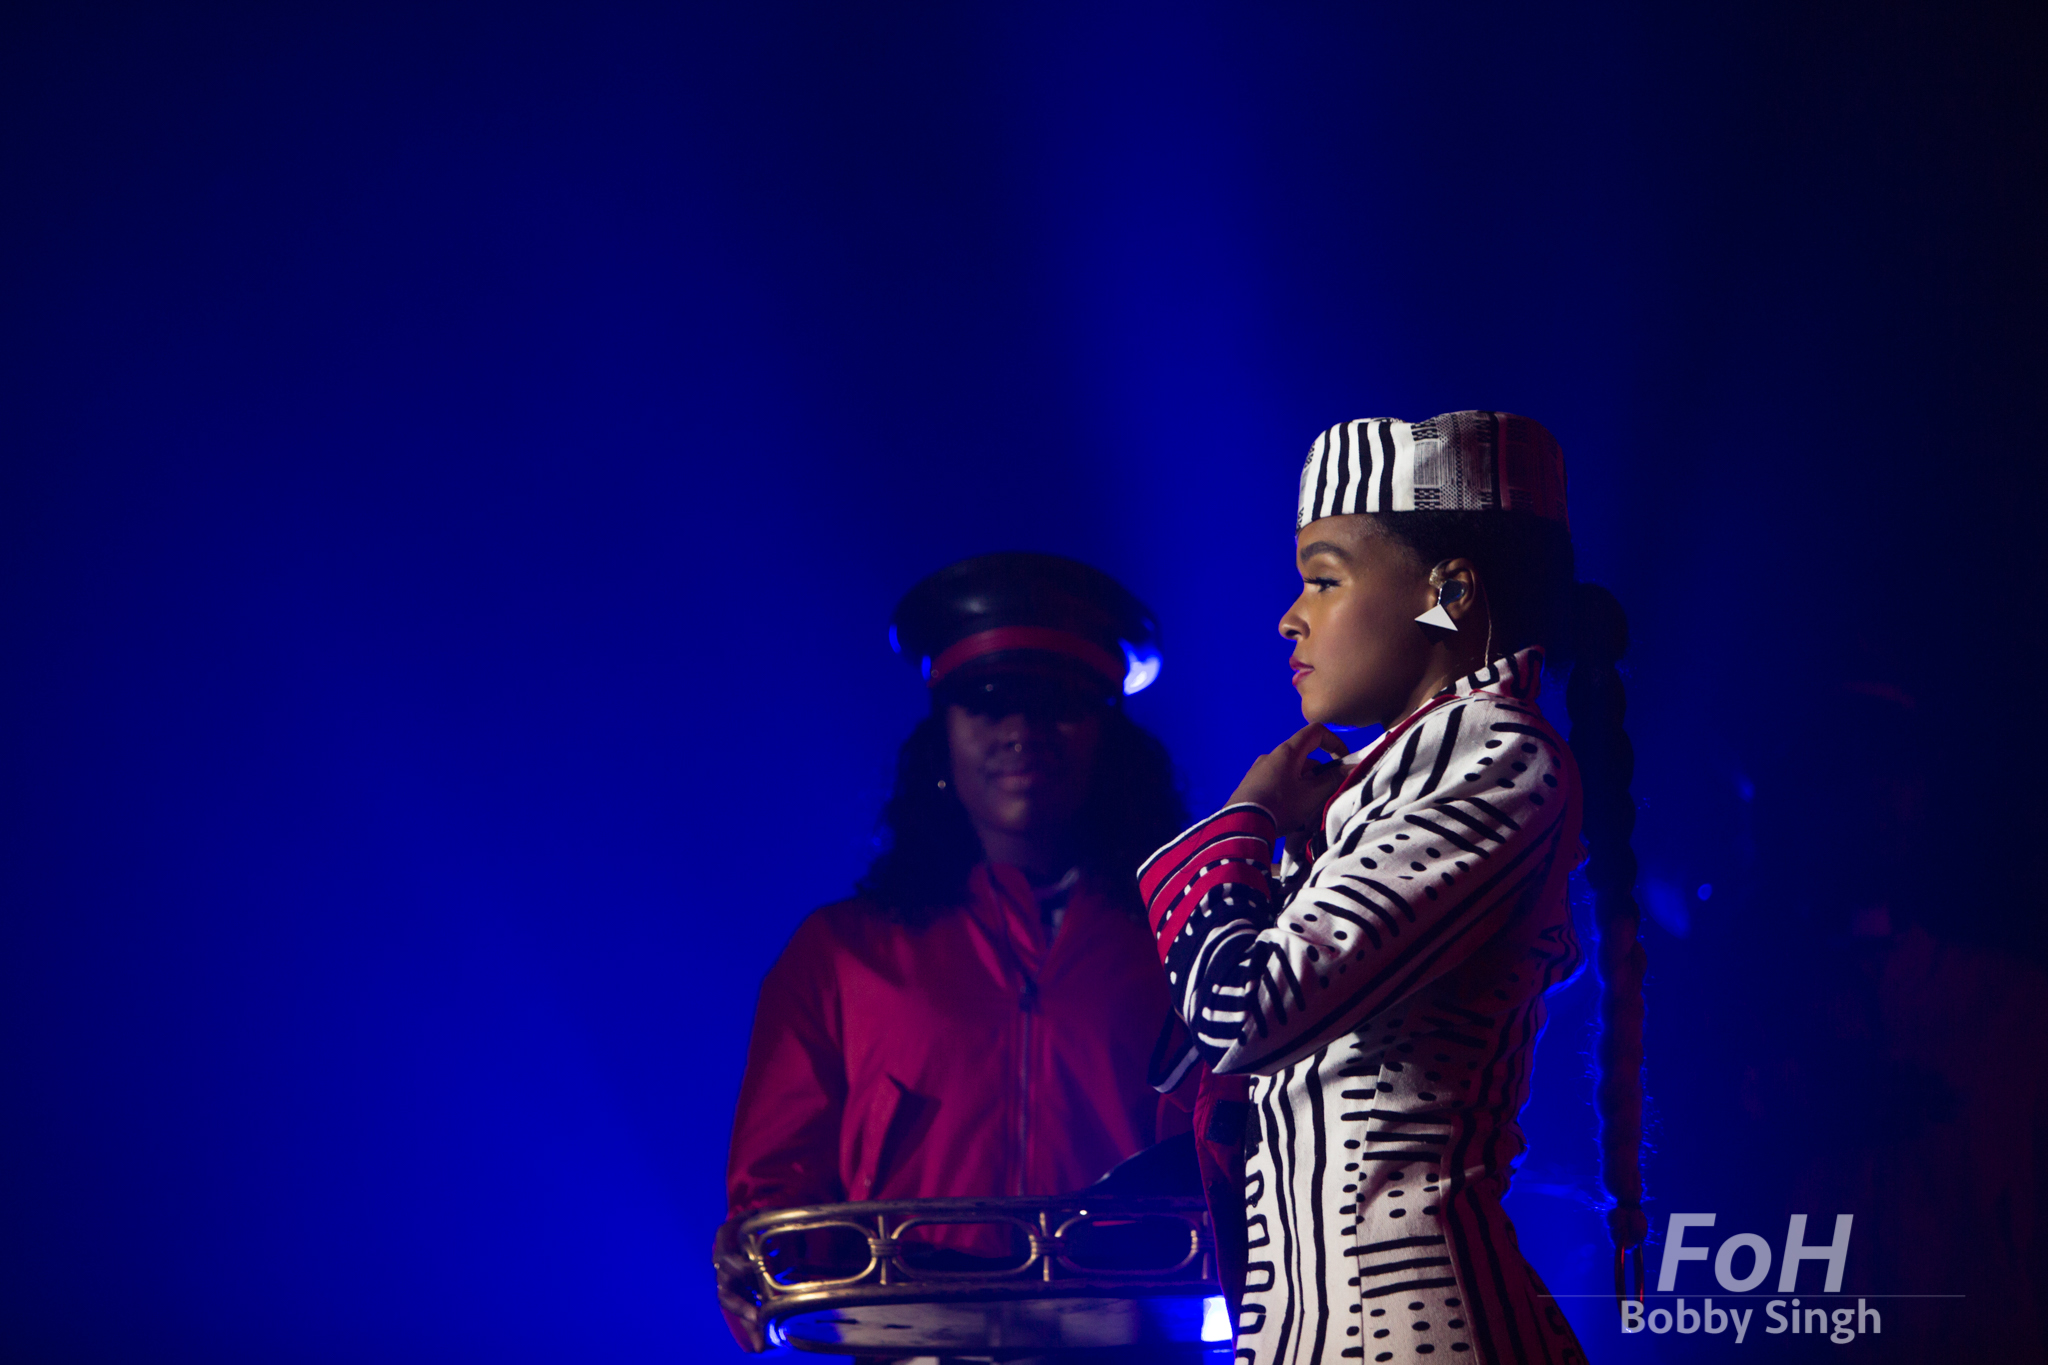 July 16th 2018. Janelle Monae performs at Rebel Nightclub in Toronto.